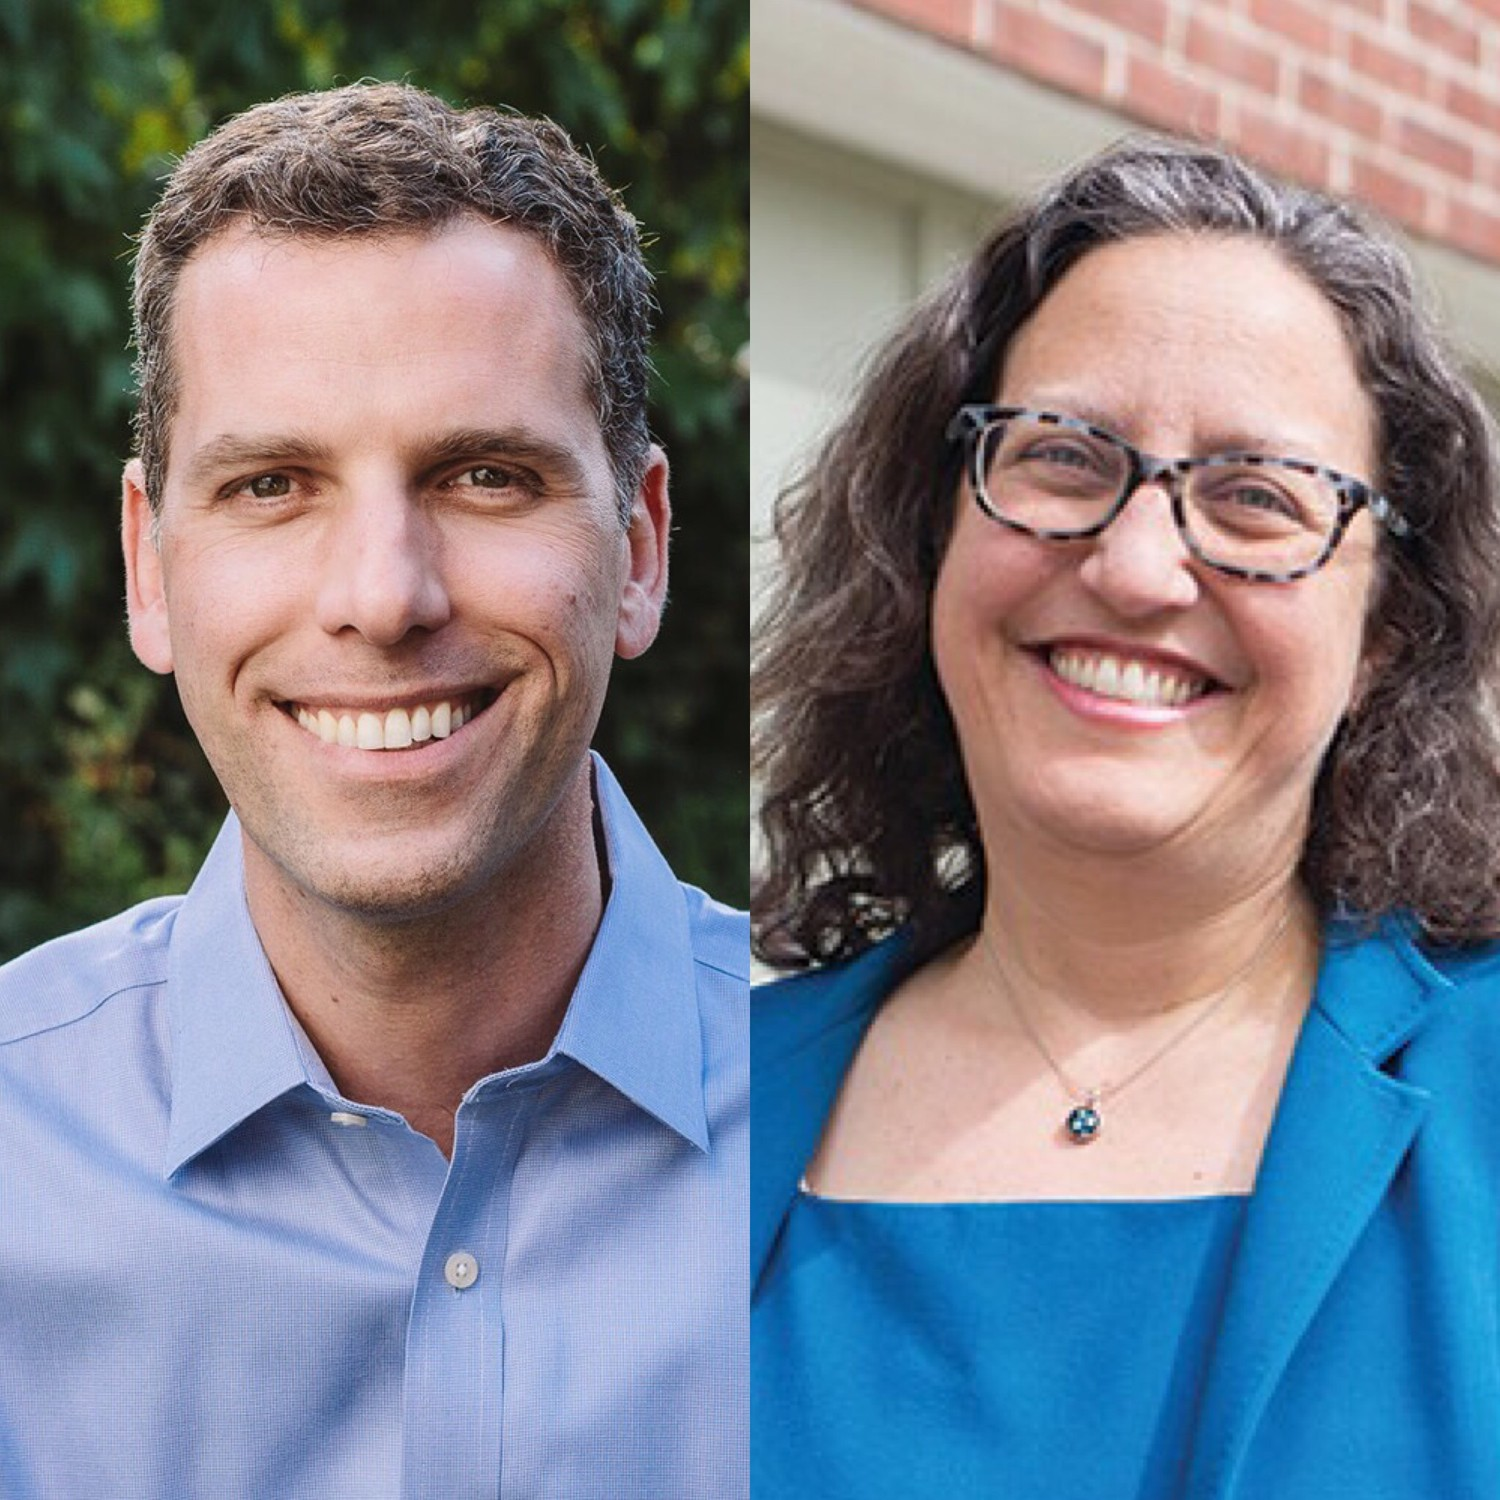 Meet the Candidates - Mark Tracy and Rebecca Kislak